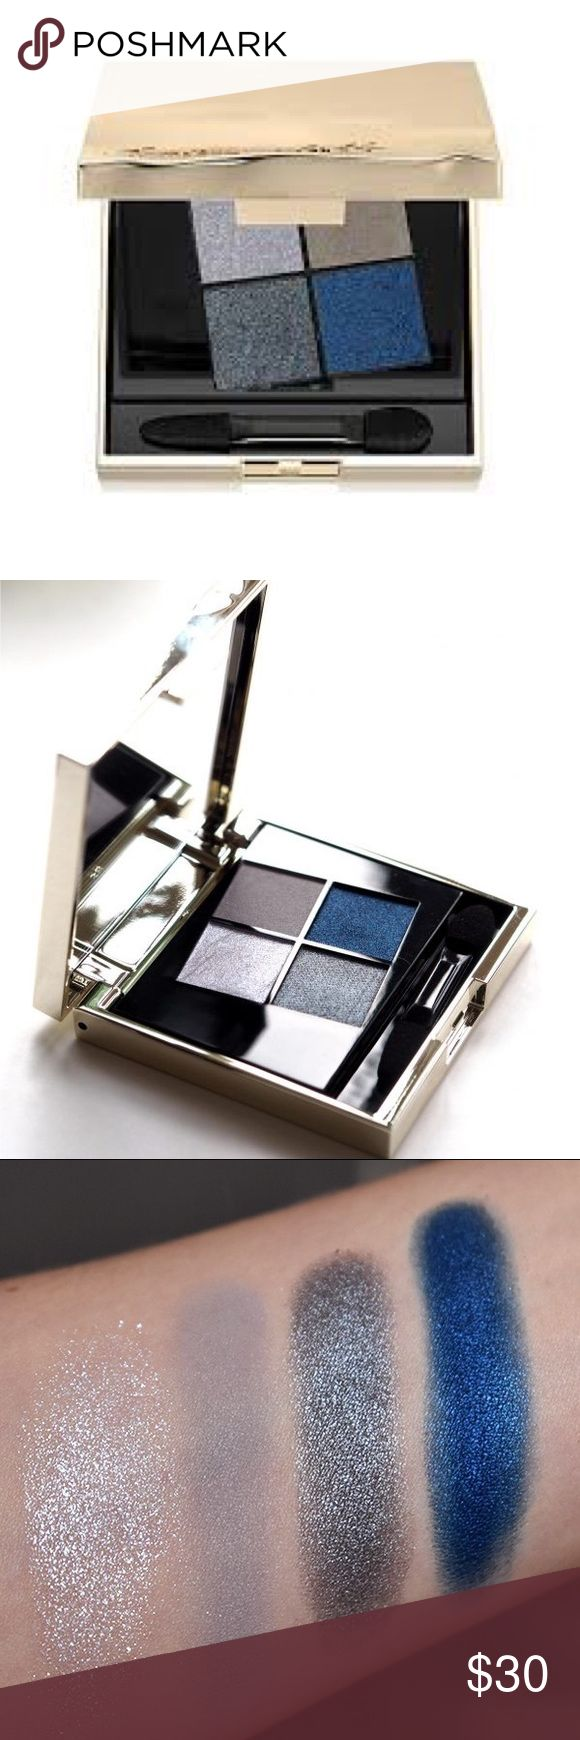 Smith and Cult Eyeshadow Quad 'Ice Tears' NWB Smith and Cult Eyeshadow Quad 'Ice Tears' NWB. Swatches were found online. Brand new in box. 100% Authentic. No trades. Reasonable offers are welcome smith & cult Makeup Eyeshadow